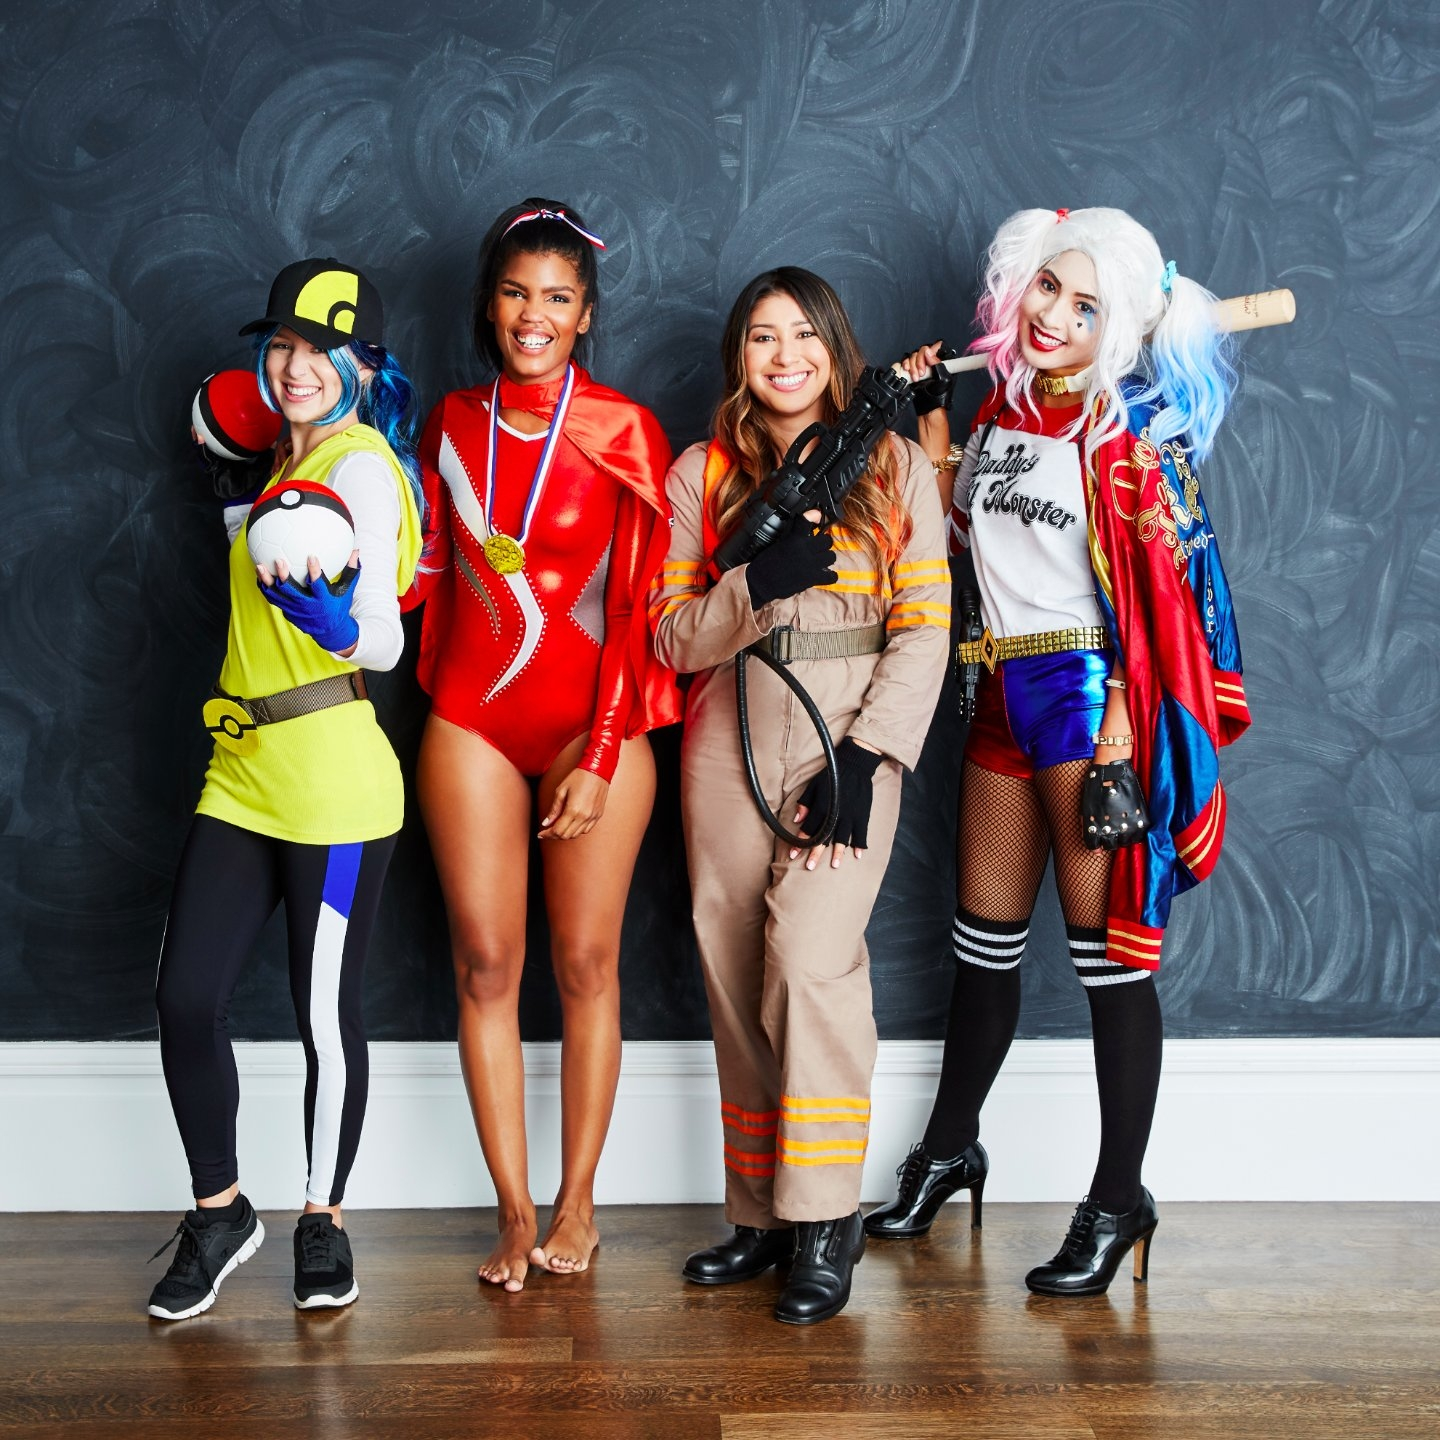 10 Ideal Good Ideas For A Halloween Costume most popular halloween costumes of 2016 popsugar celebrity 2020